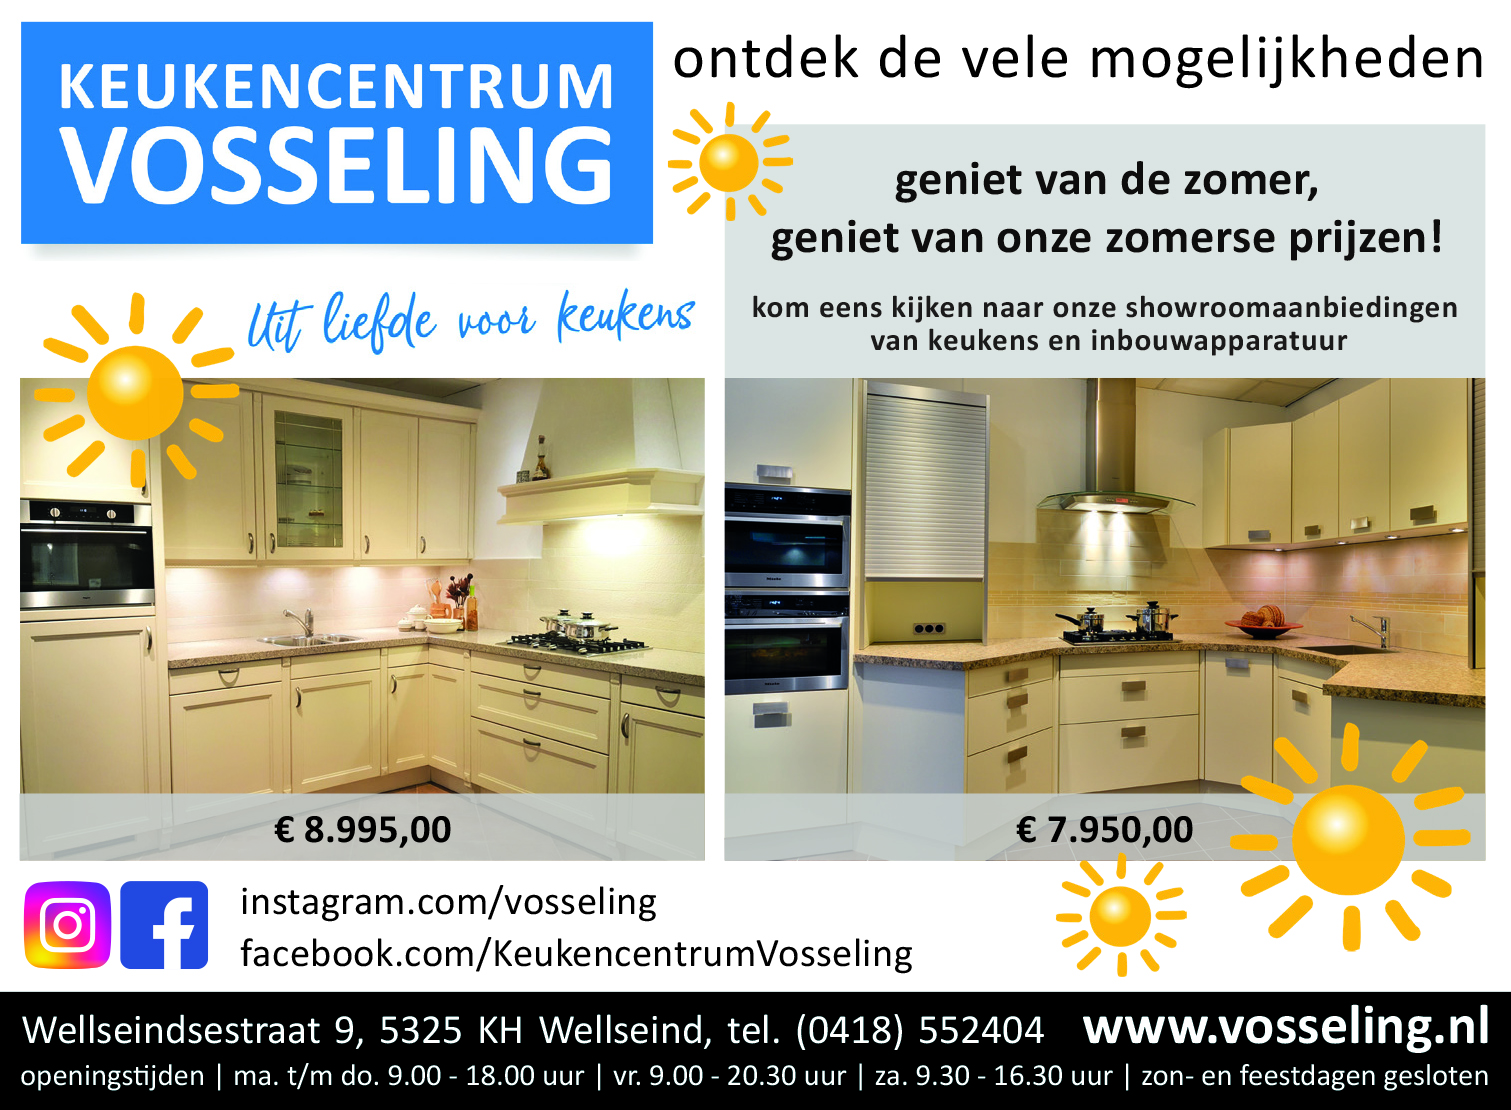 definitieve versie week 29, Vosseling_adv_ 128x94mm